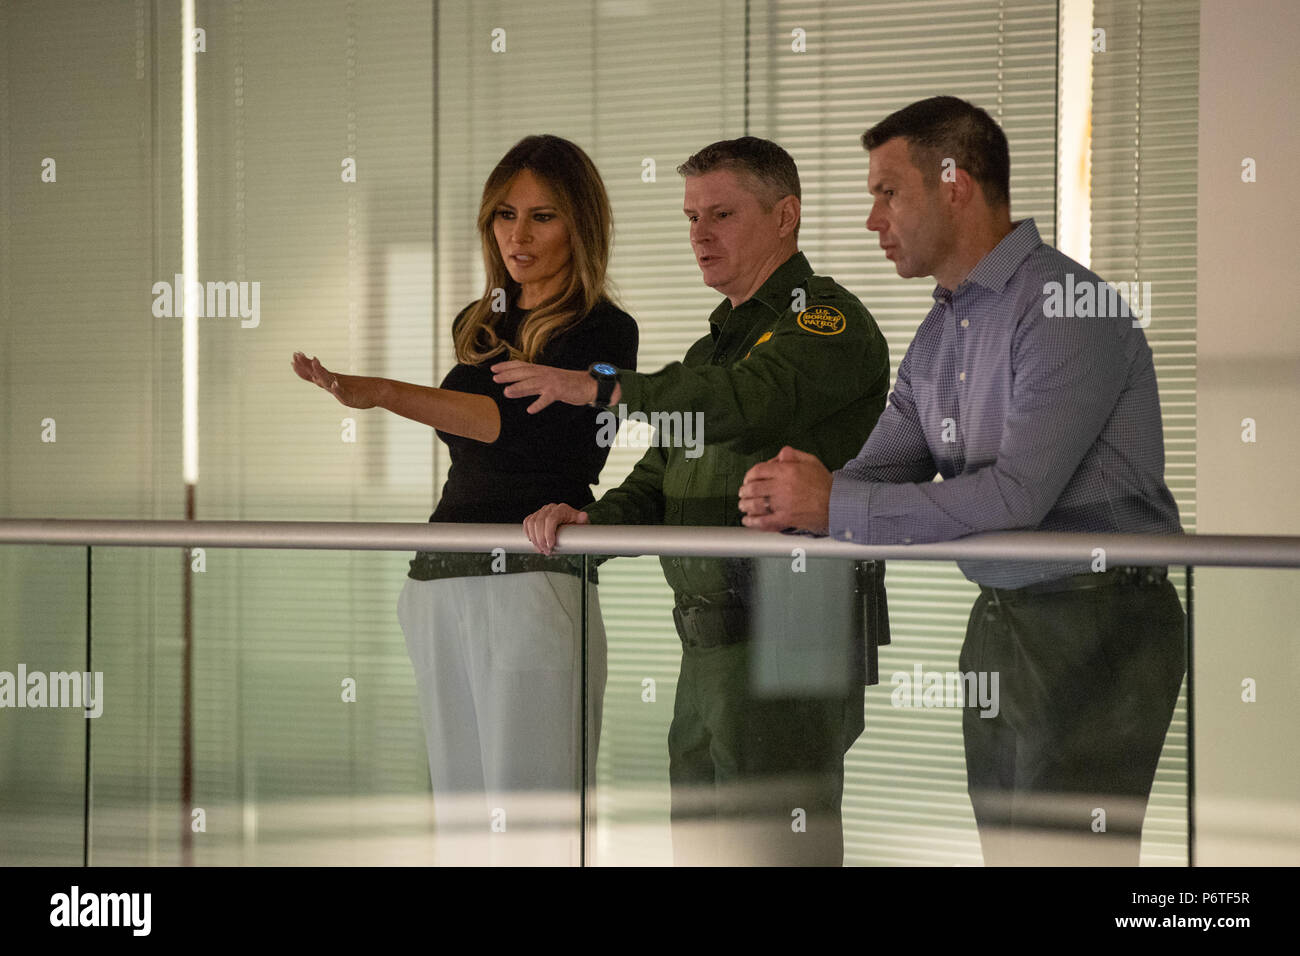 U.S. First lady Melania Trump listens to Supervisory Border Patrol Agent Robert Bushell, center, during a visit to the Southwest Key Campbell shelter for immigrant children that have been separated form their parents June 28, 2018 in Phoenix, Arizona. The children were separated from their families under the zero-tolerance enforcement policy of the Trump administration. - Stock Image